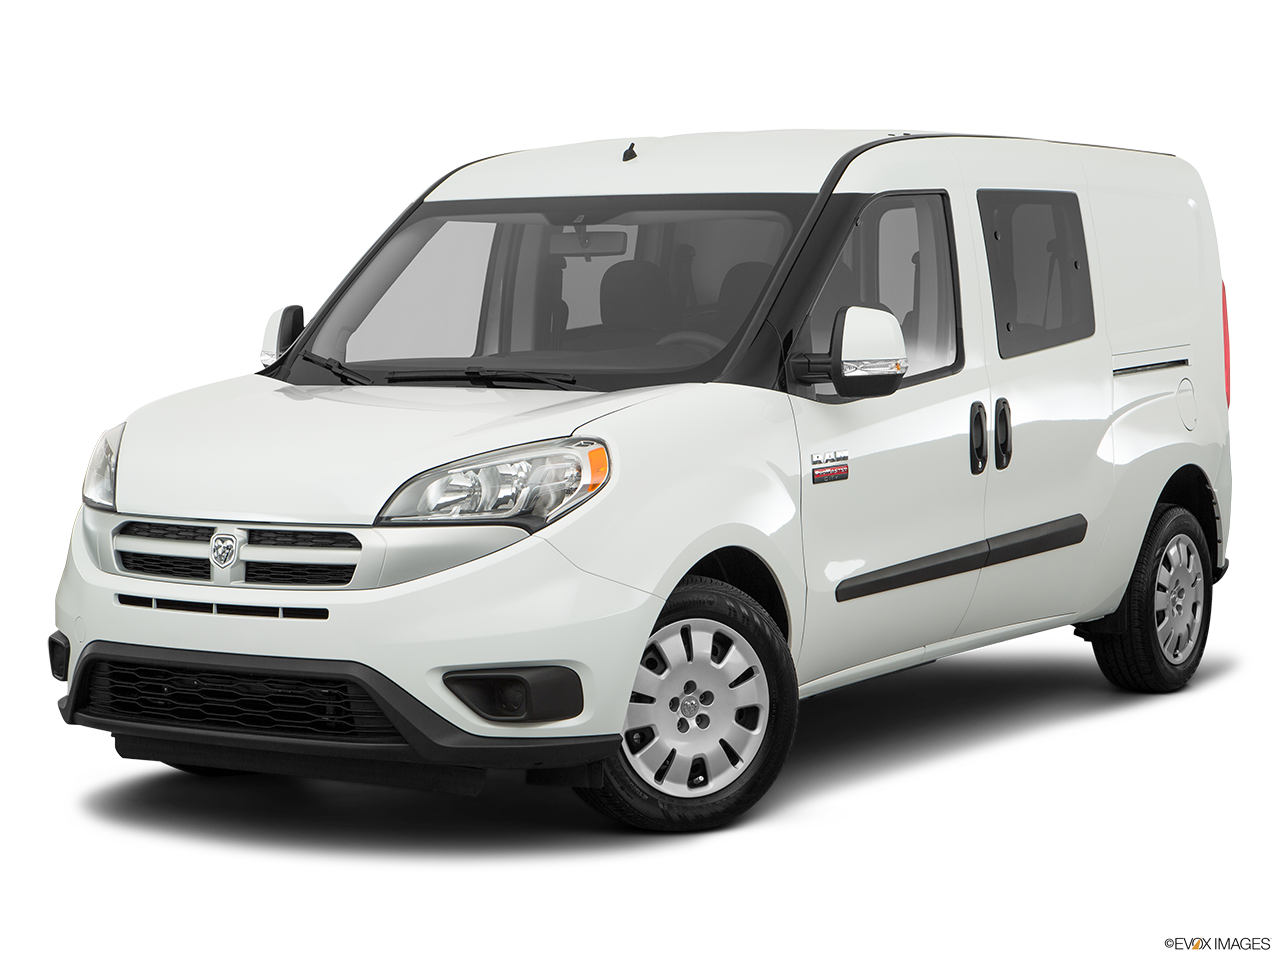 Test Drive A 2017 RAM ProMaster City at Premier RAM in Tracy